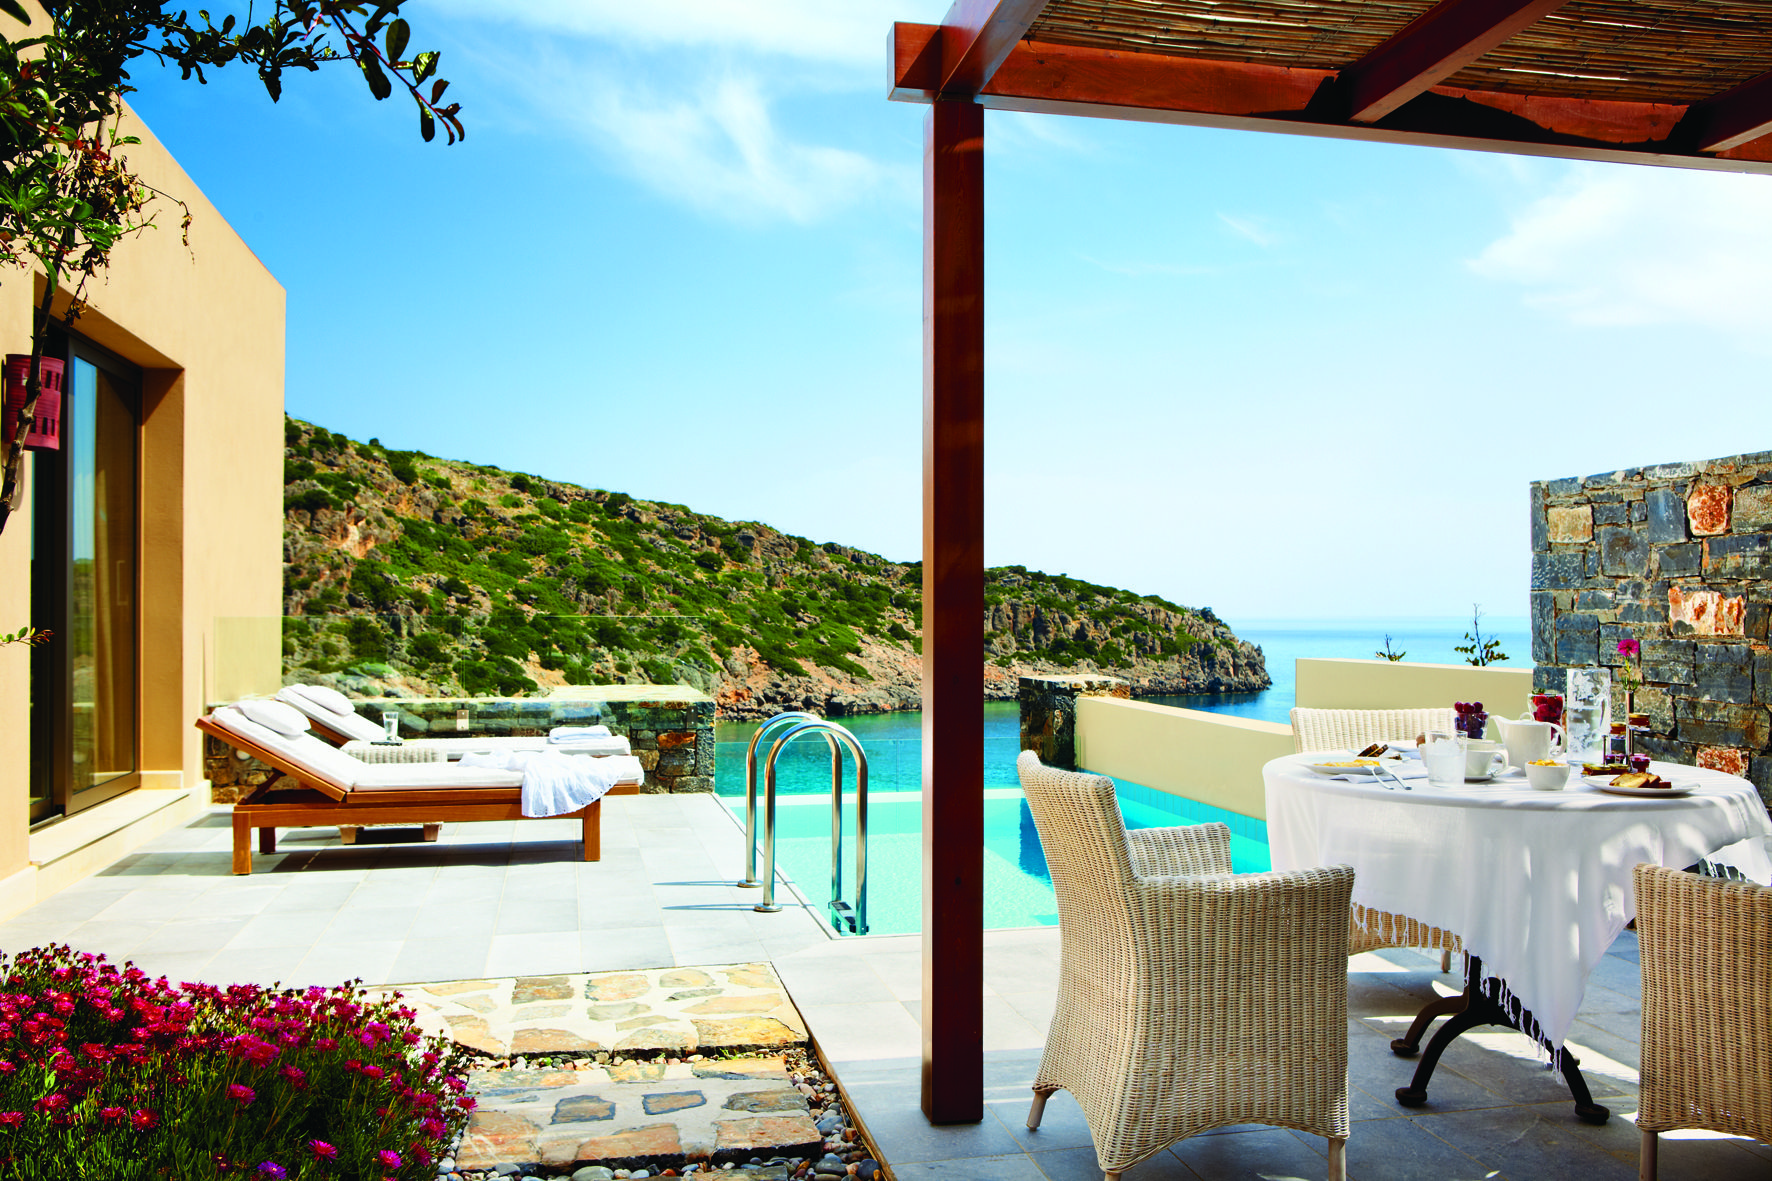 Daios Cove Resort In Agios Nikolaos Is A New Luxury 5 Star Beach Hotel Crete That Offers More Than Lavish Surroundings And Holiday Experience